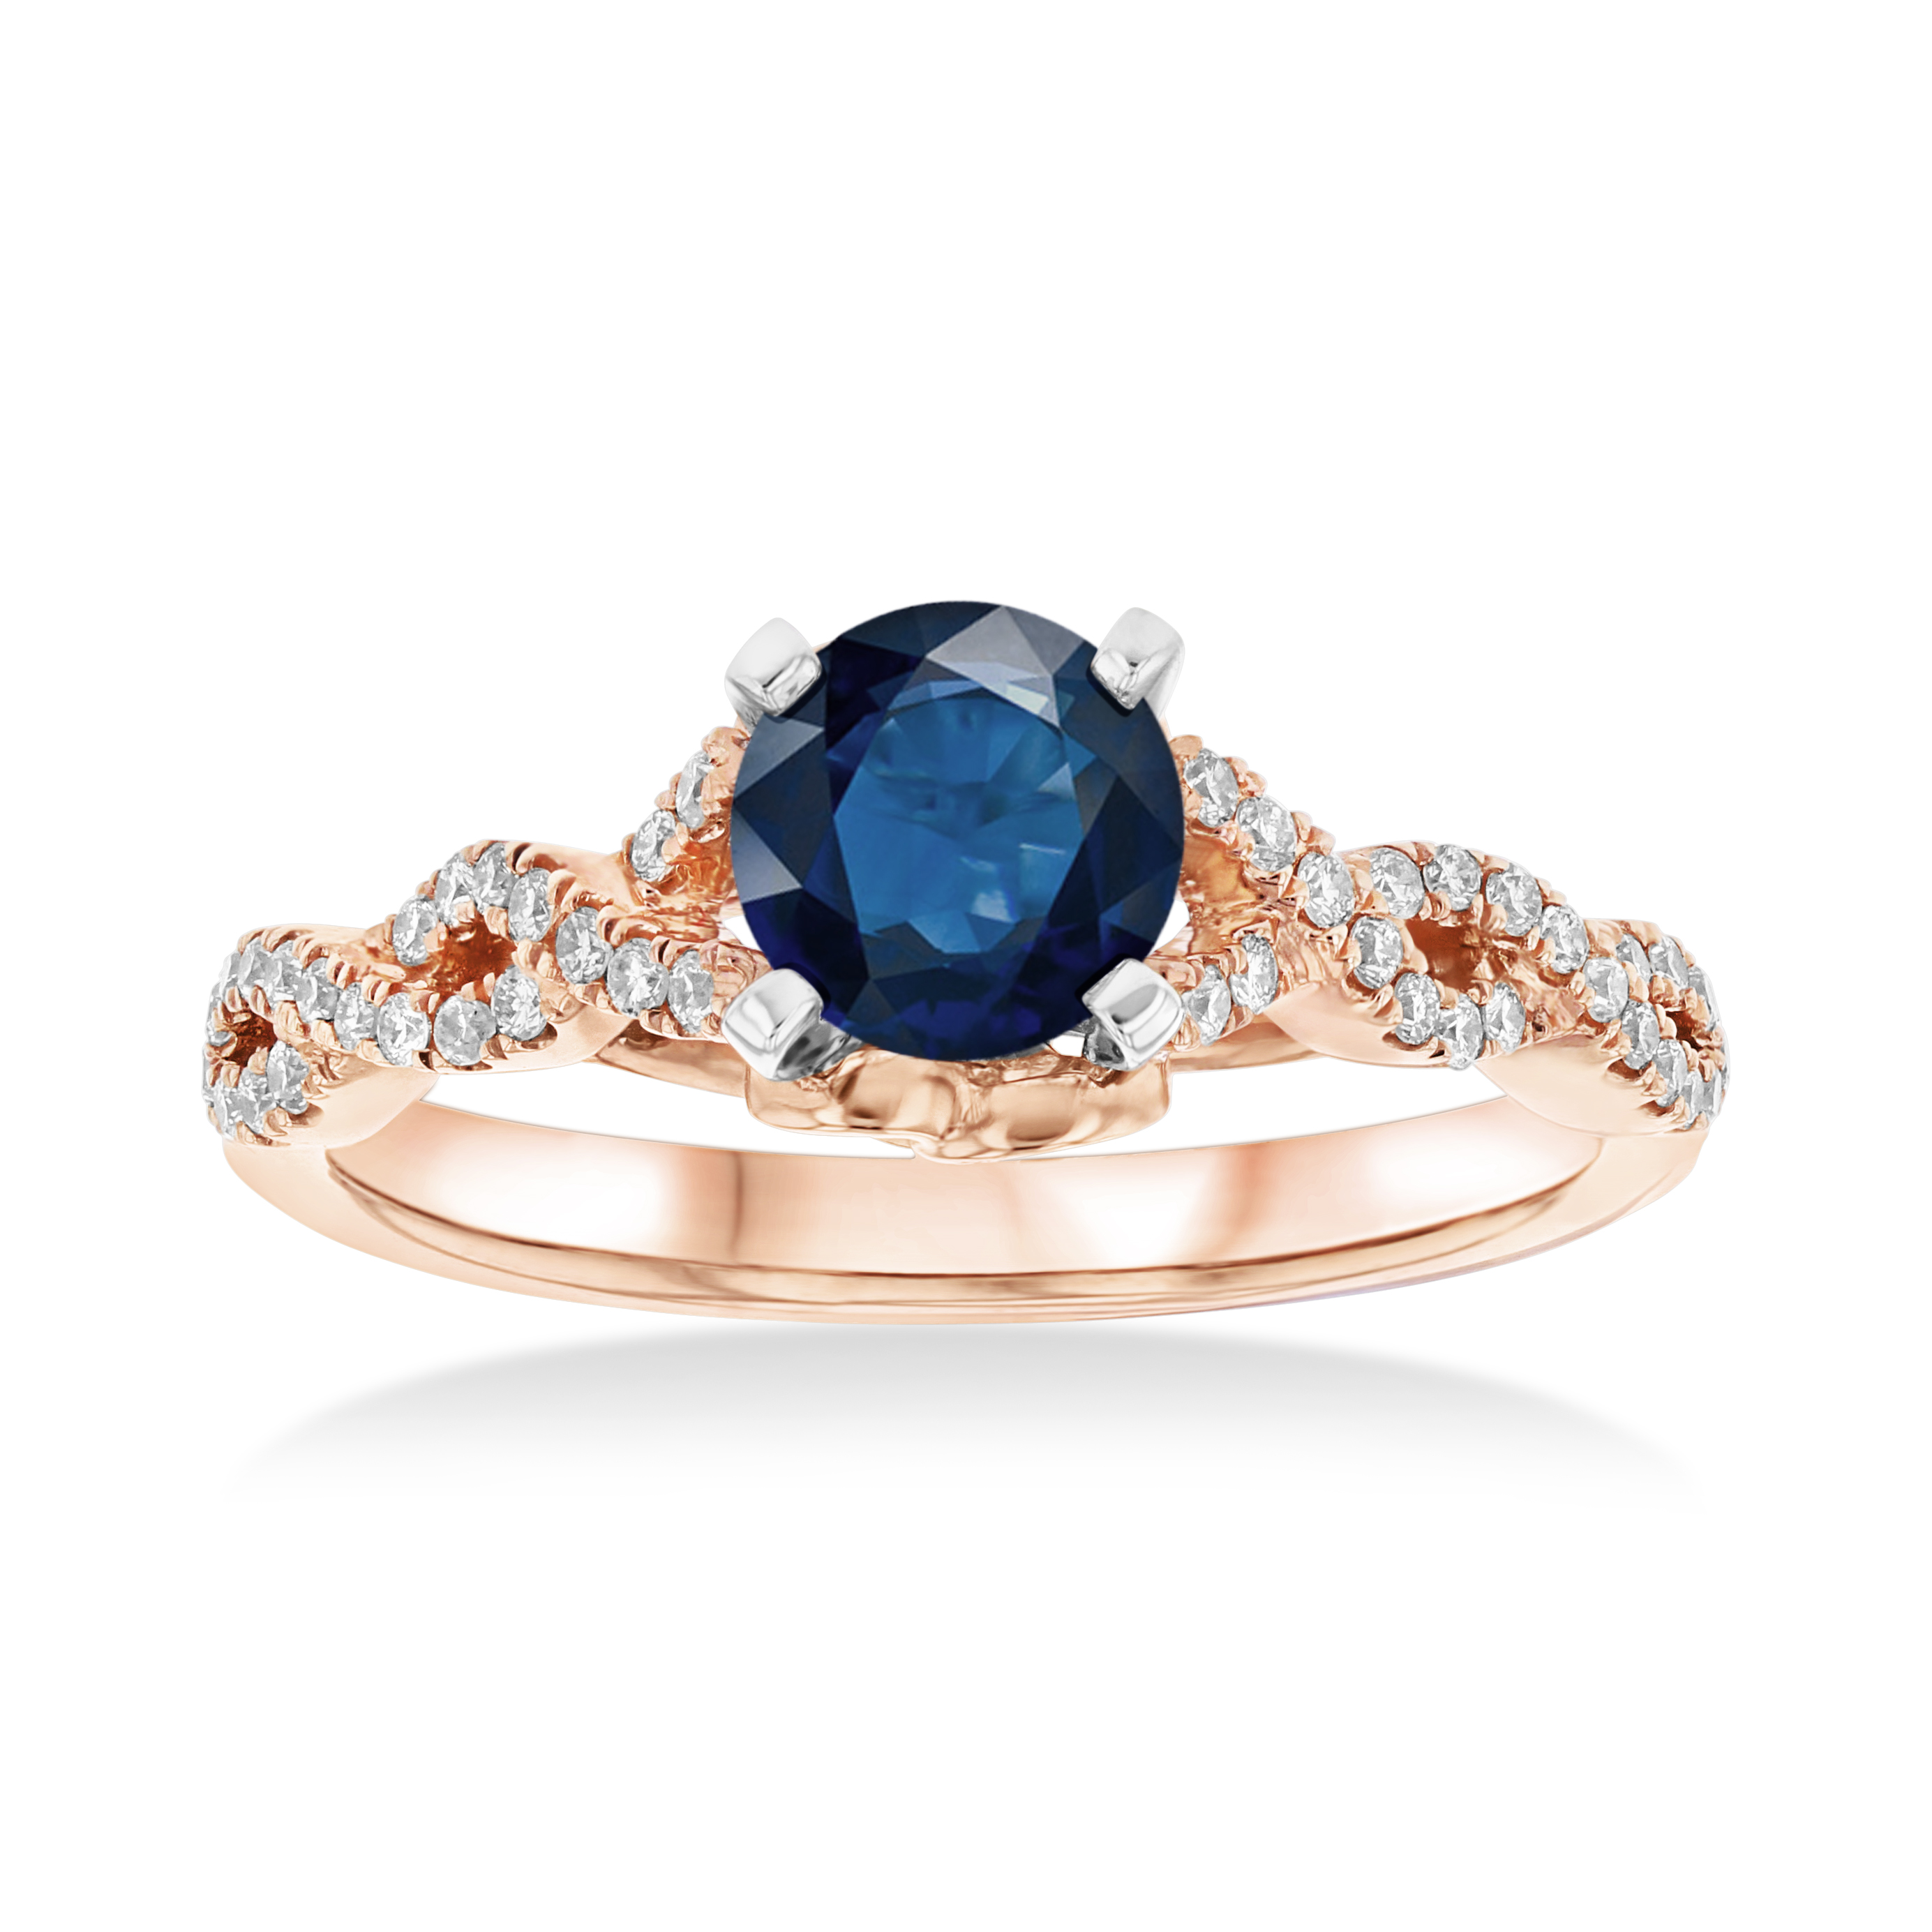 View 1.10ctw Sapphire and Diamond Engagement Ring in 14k Rose Gold